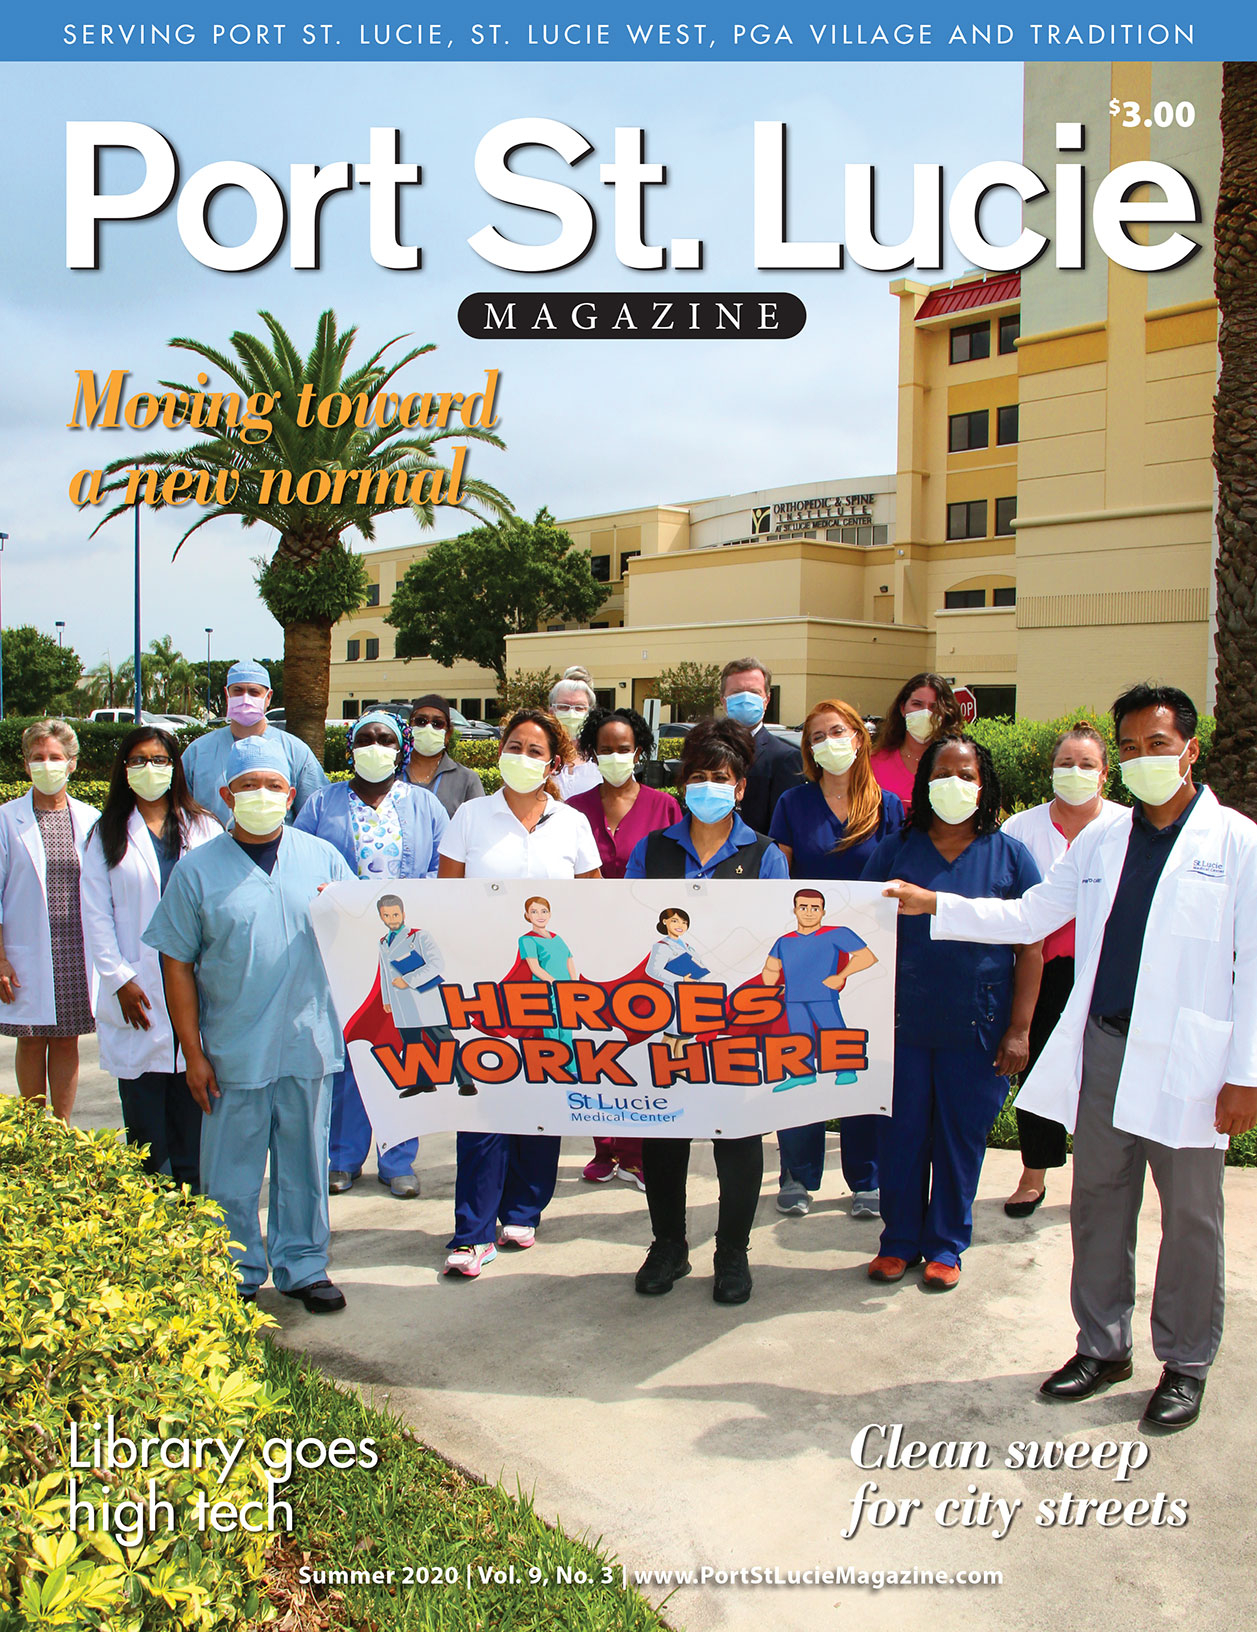 Port St. Lucie Magazine - Vol. 9, No. 3